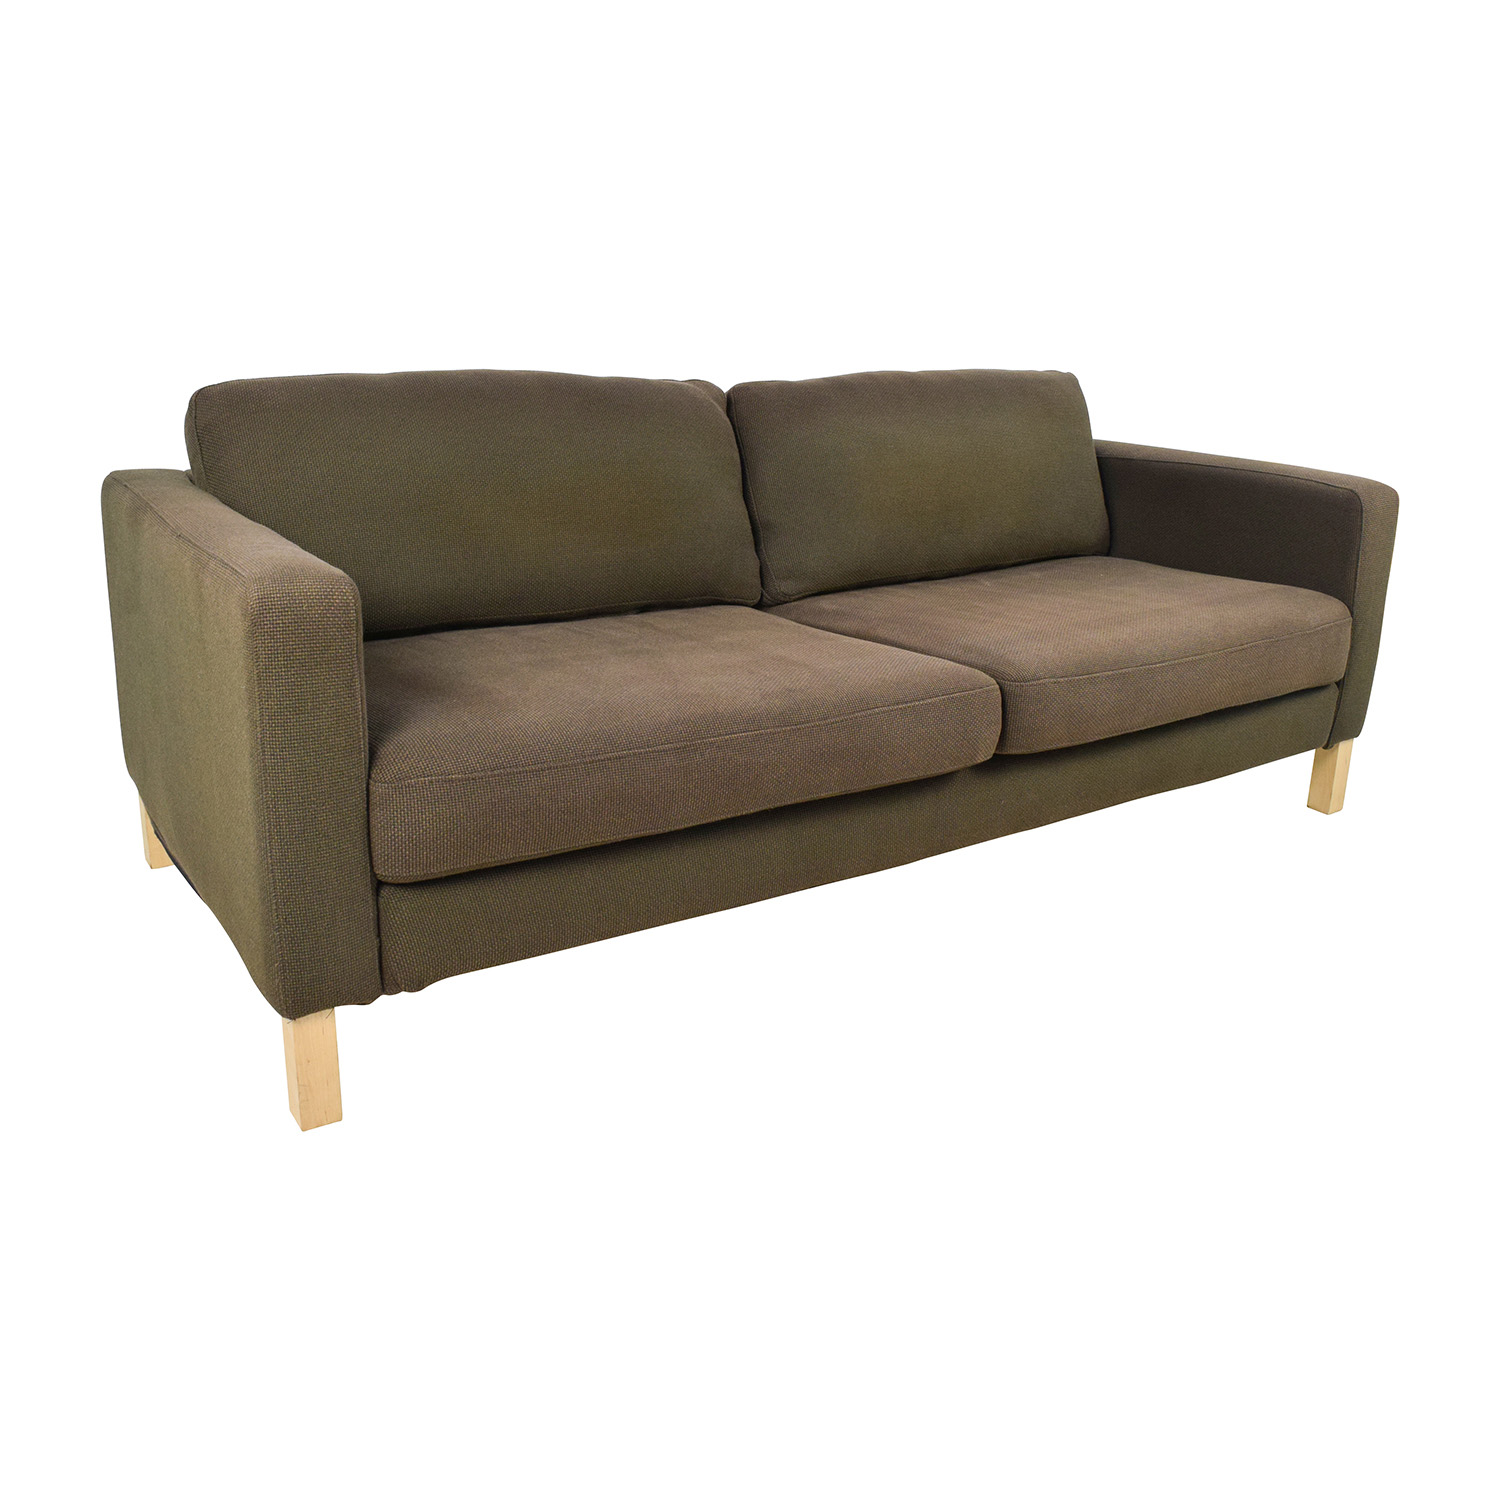 Sofa S 50% Off - Ikea Ikea Brown Woven Sofa / Sofas